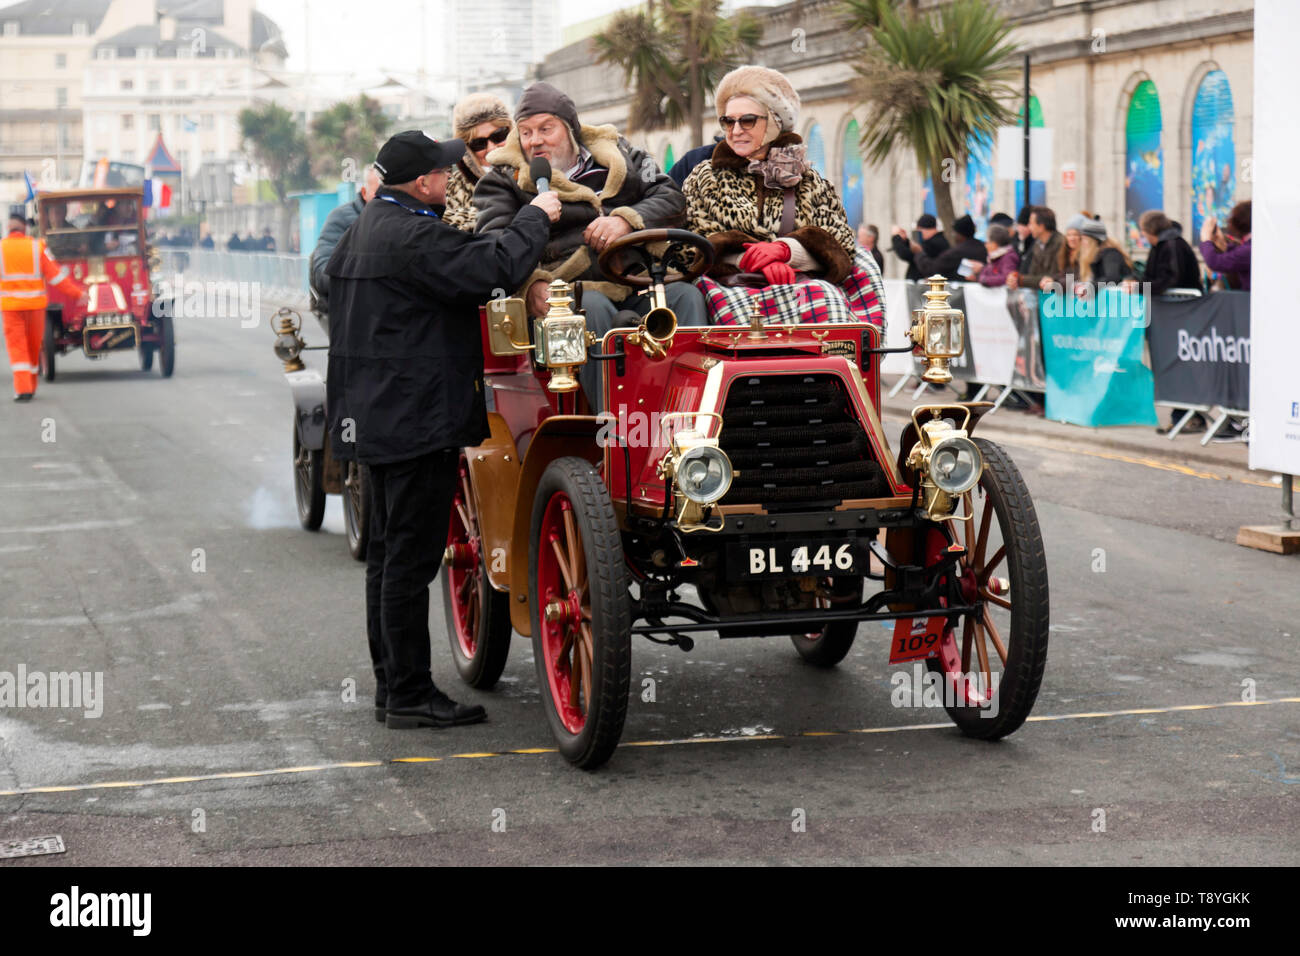 Mr Raymond Ingram, being interviewed,  after successfully completing the 2018 London to Brighton Veteran Car Run, in a 1901 Durkopp - Stock Image